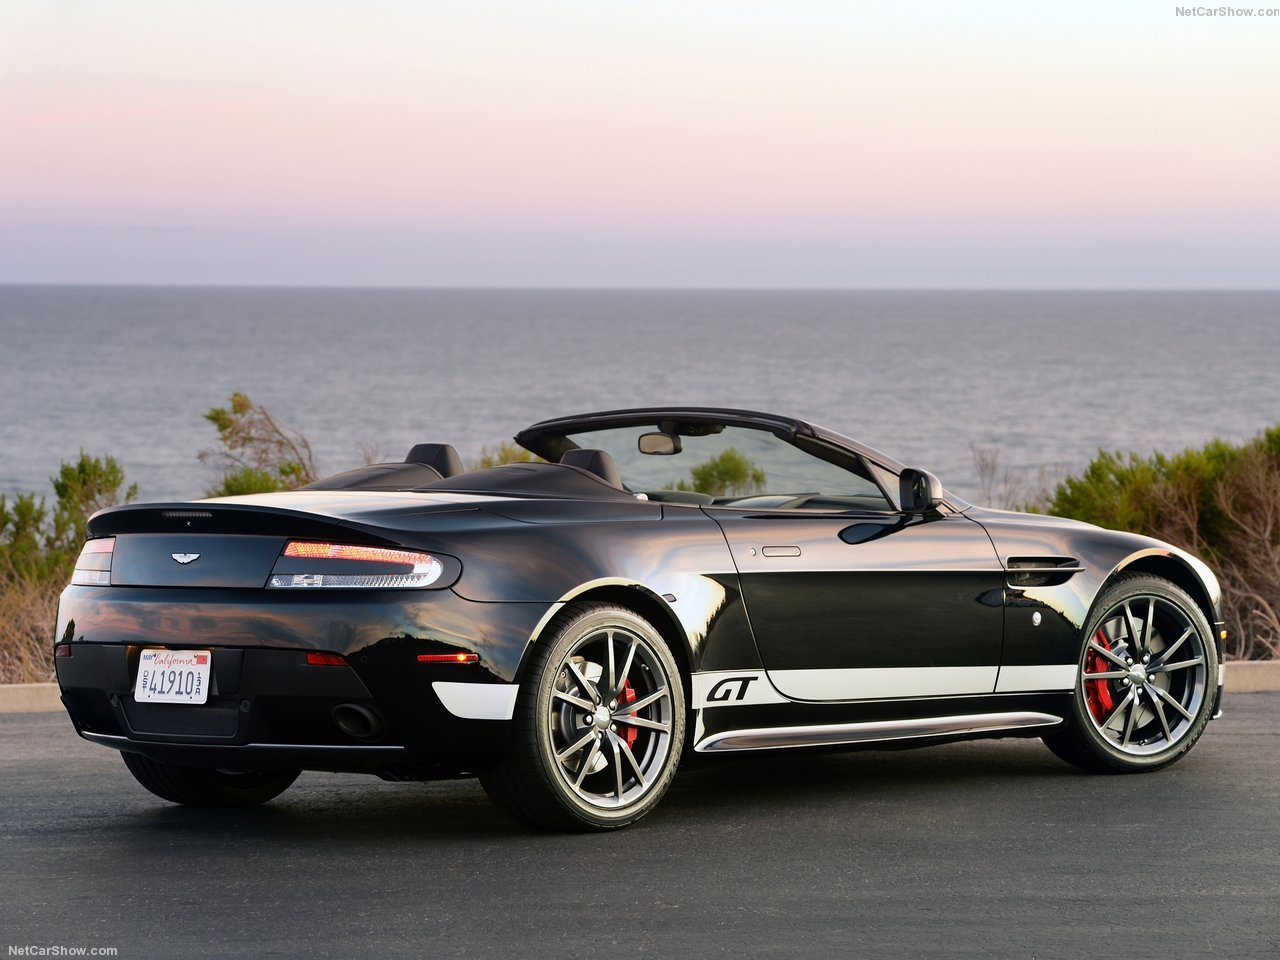 Aston Martin V8 Vantage GT Roadster photo 138295